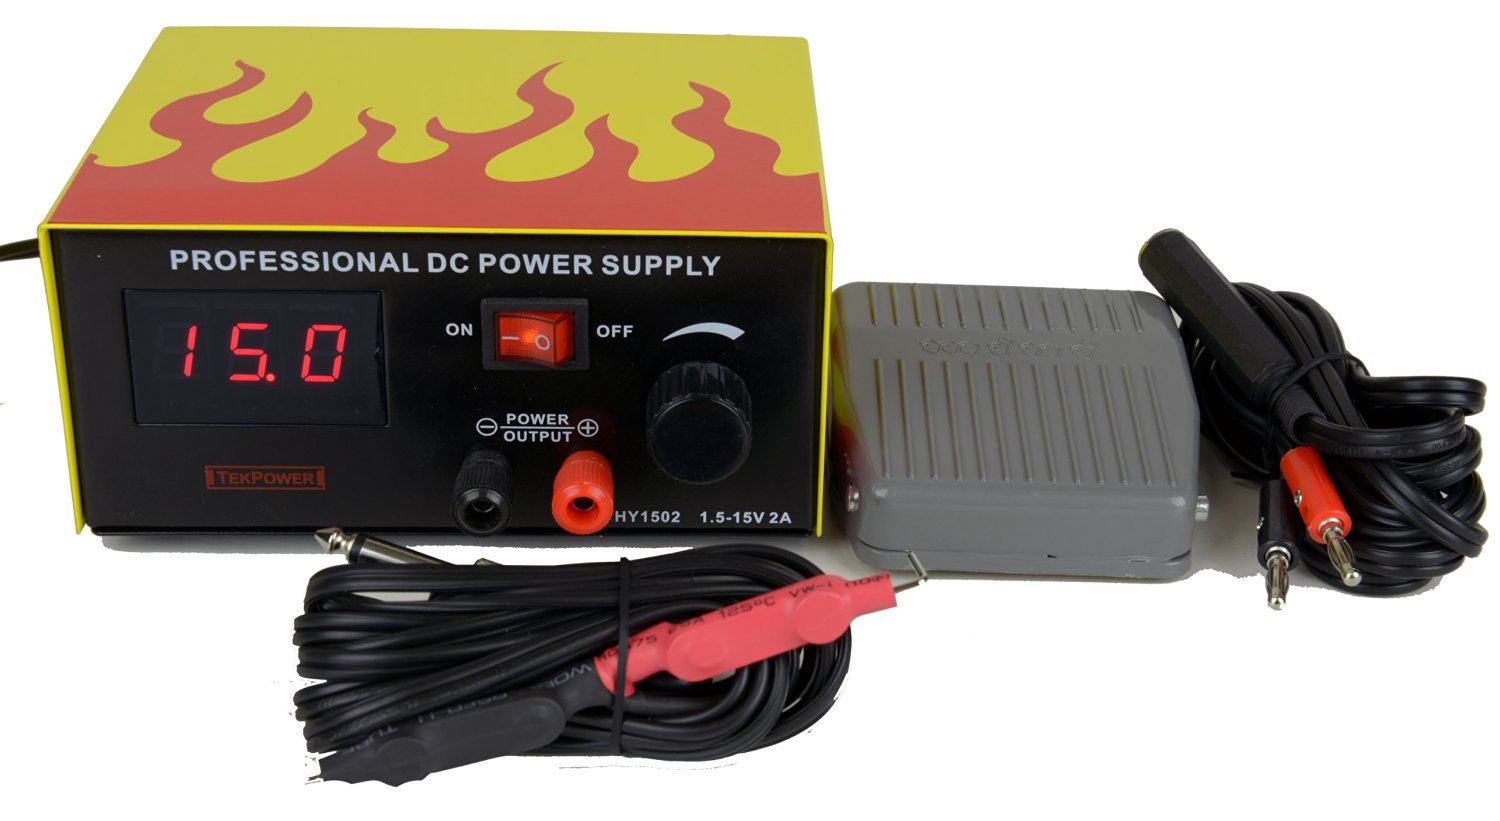 Tekpower TP1502, DC Power Supply with Control Pedal for Tattoo, gaming and Lab